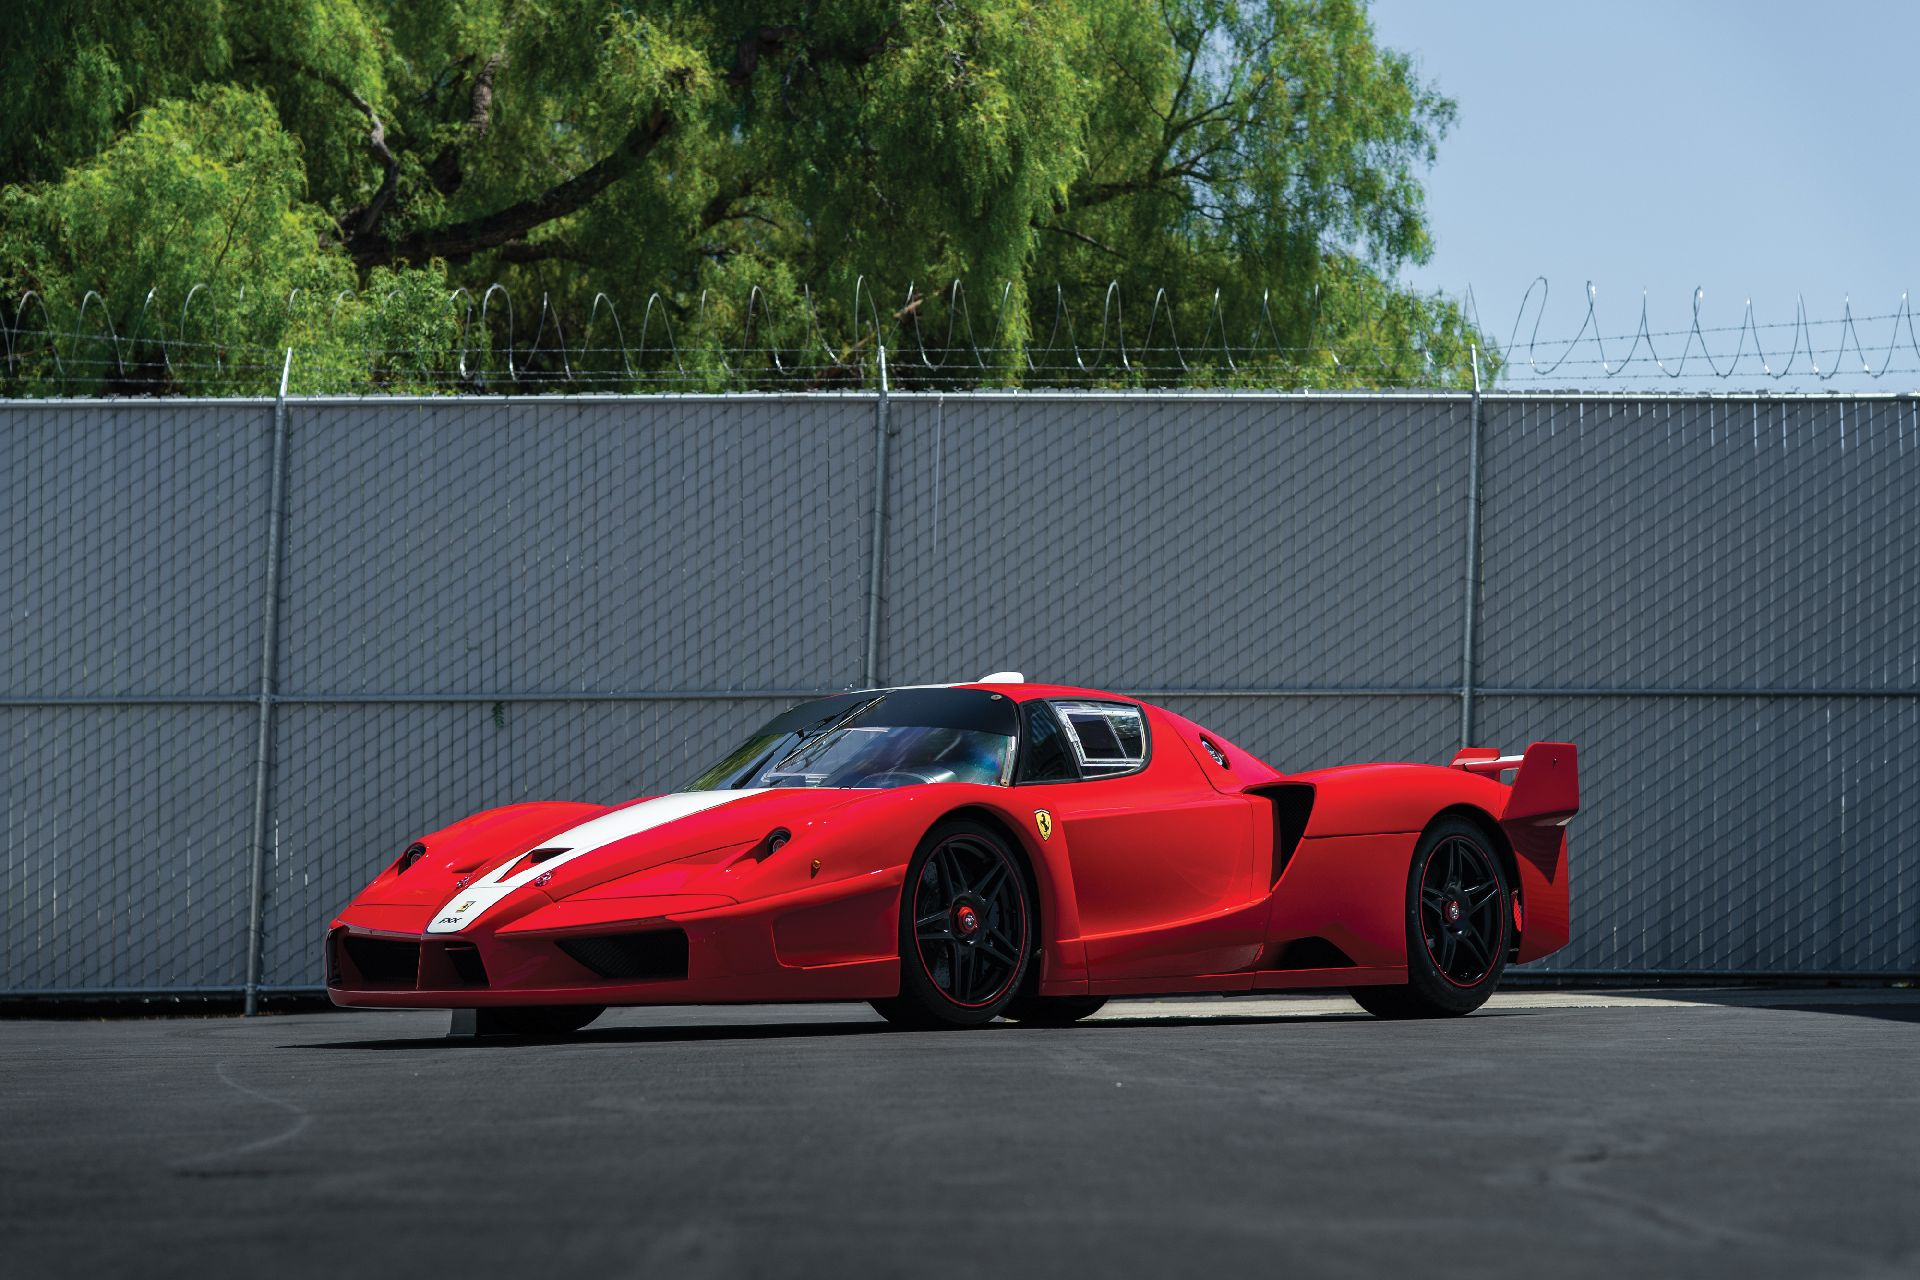 e4c7a416-ferrari-fxx-auction-1